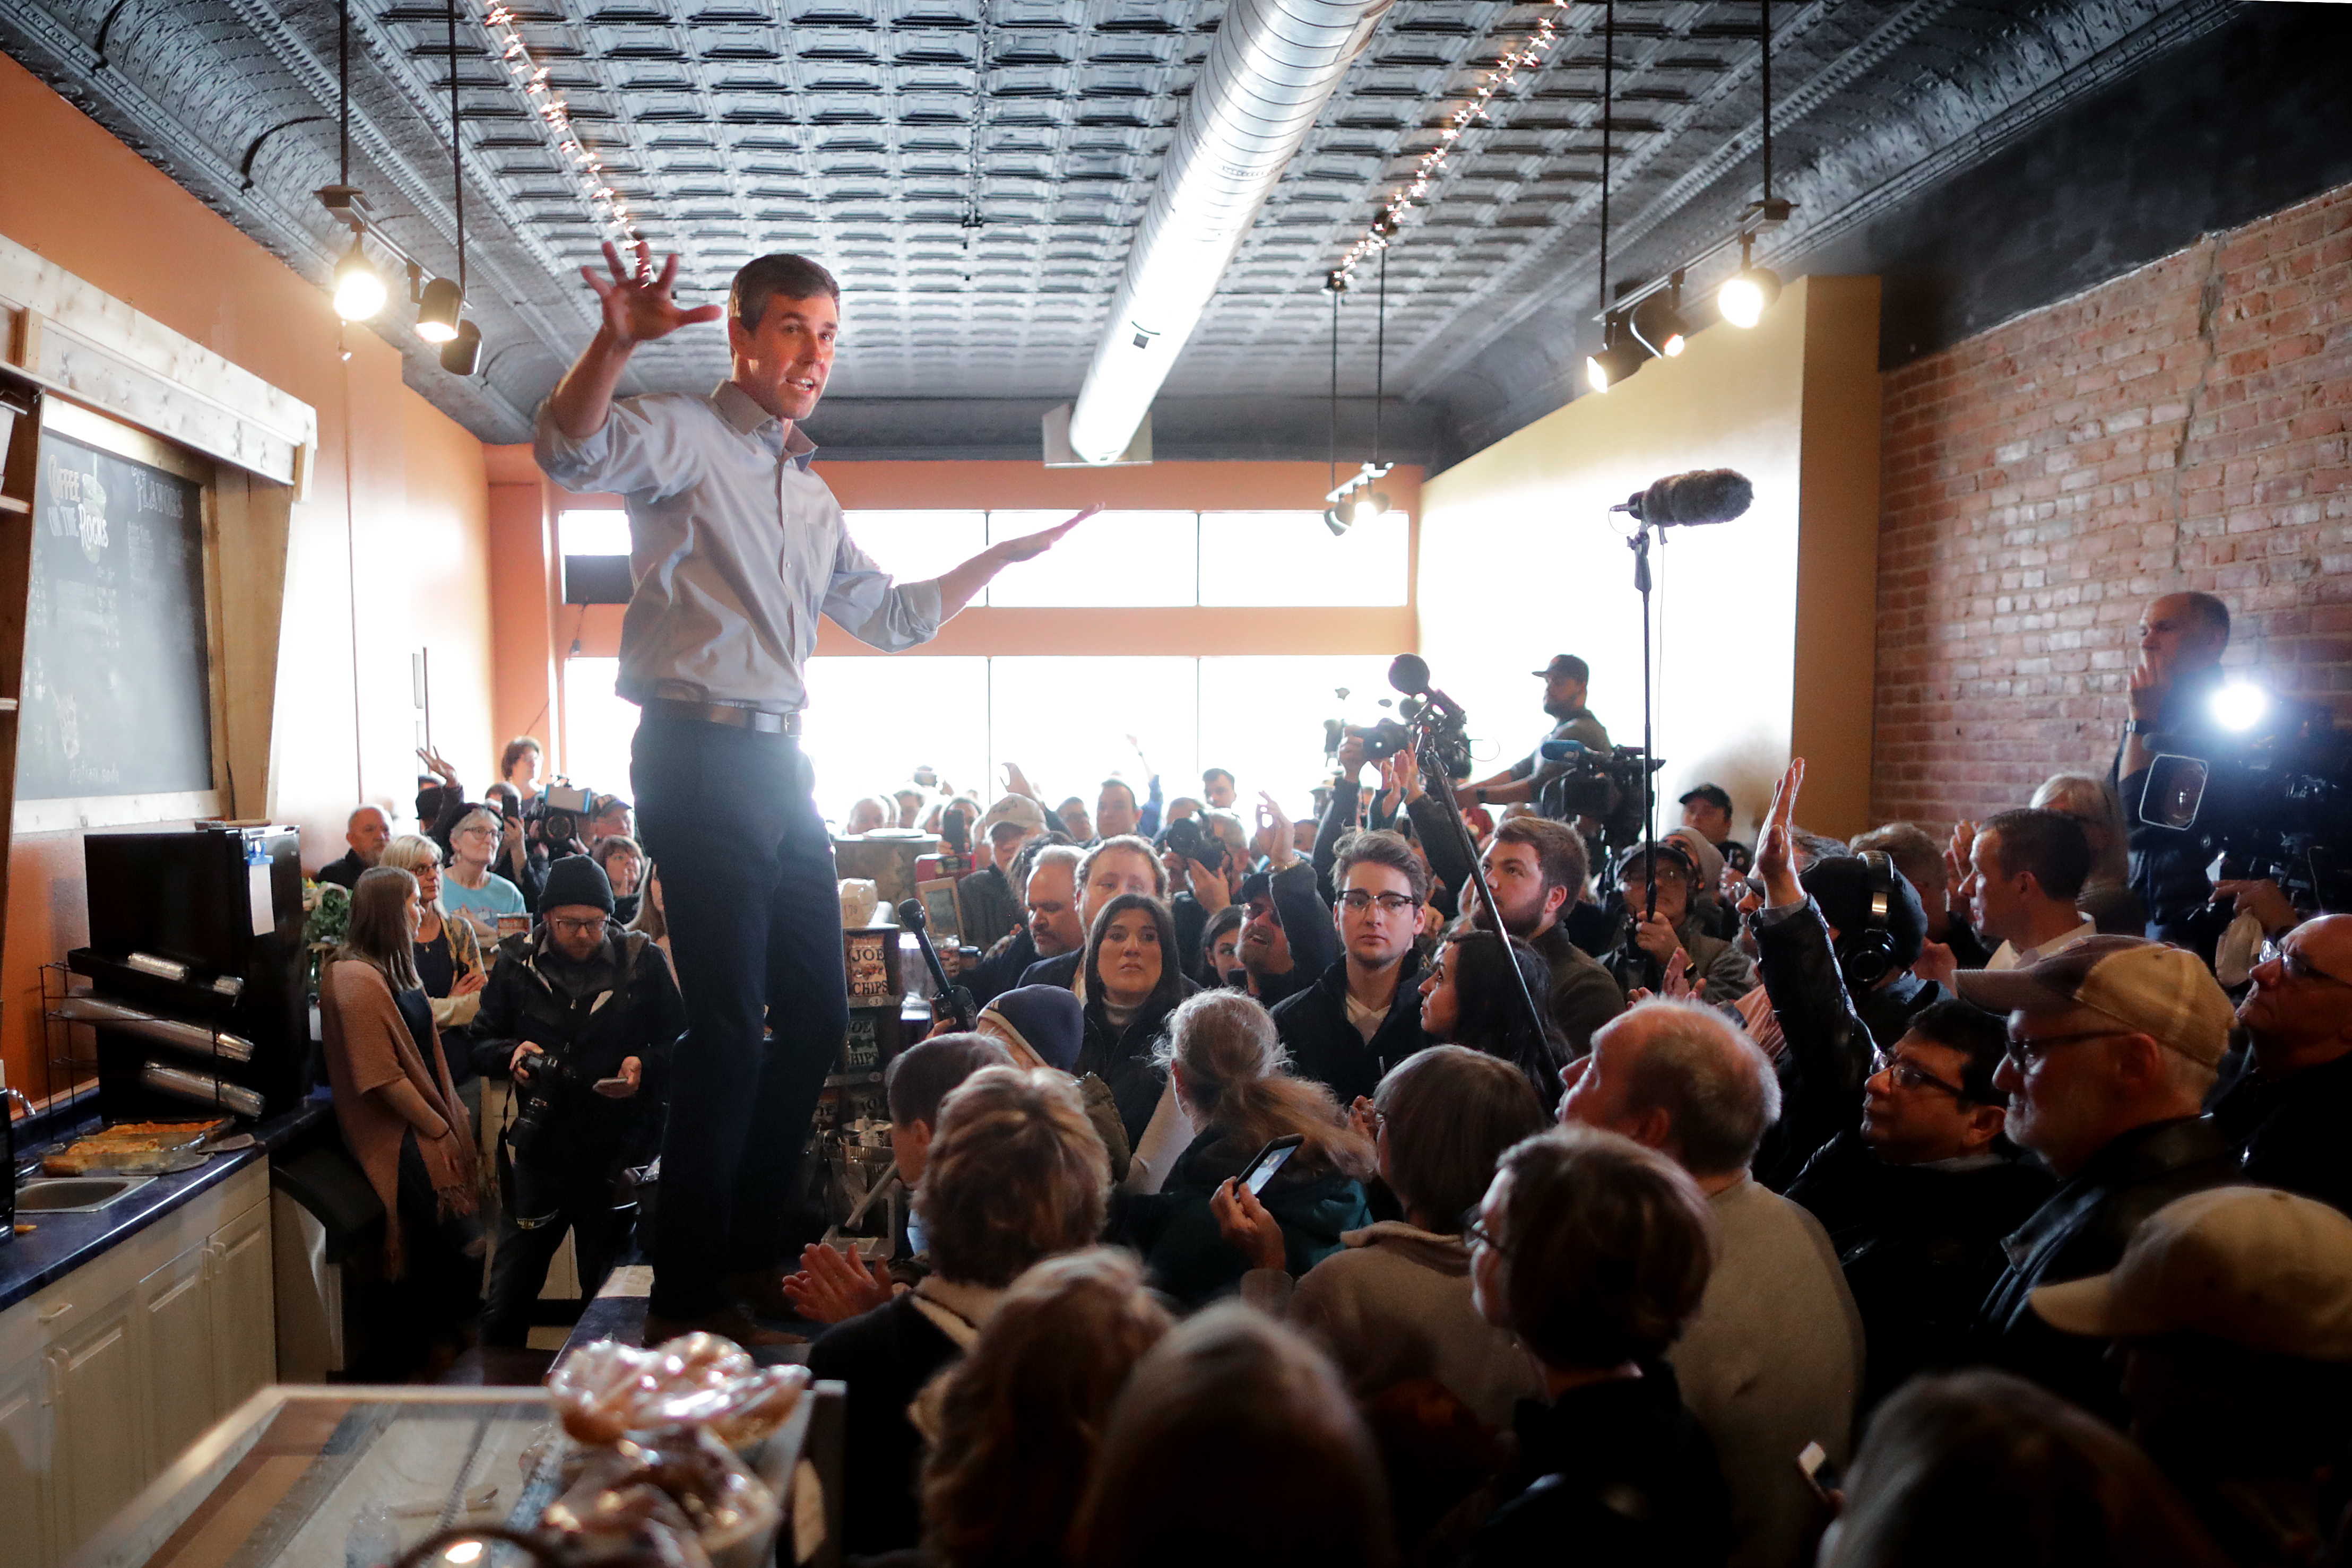 Beto O'Rourke countertops and tables